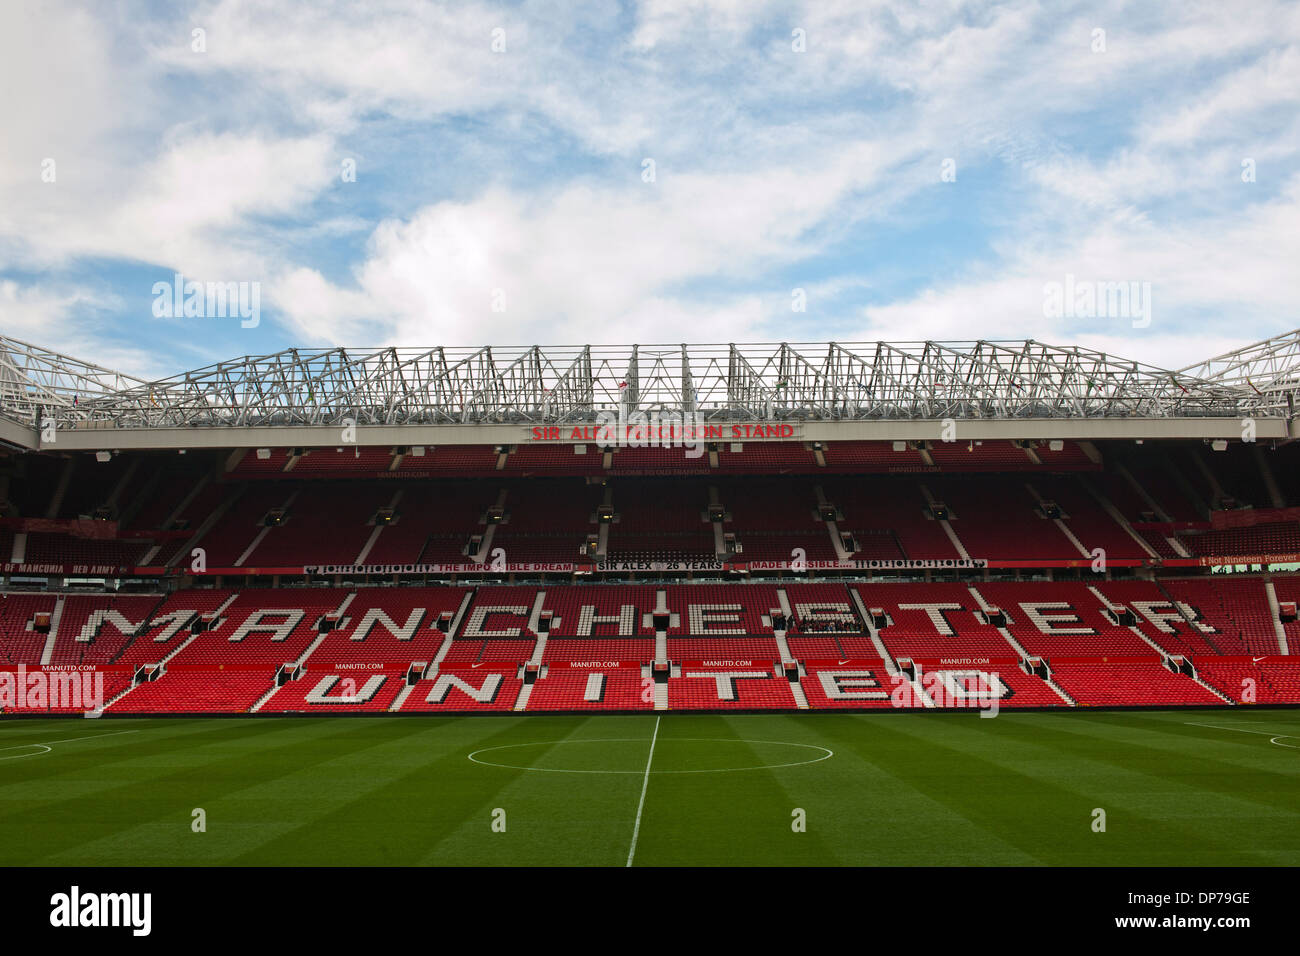 Old Trafford, home of Manchester United Football Club, Manchester, England, UK.; view of Sir Alex Ferguson Stand. - Stock Image